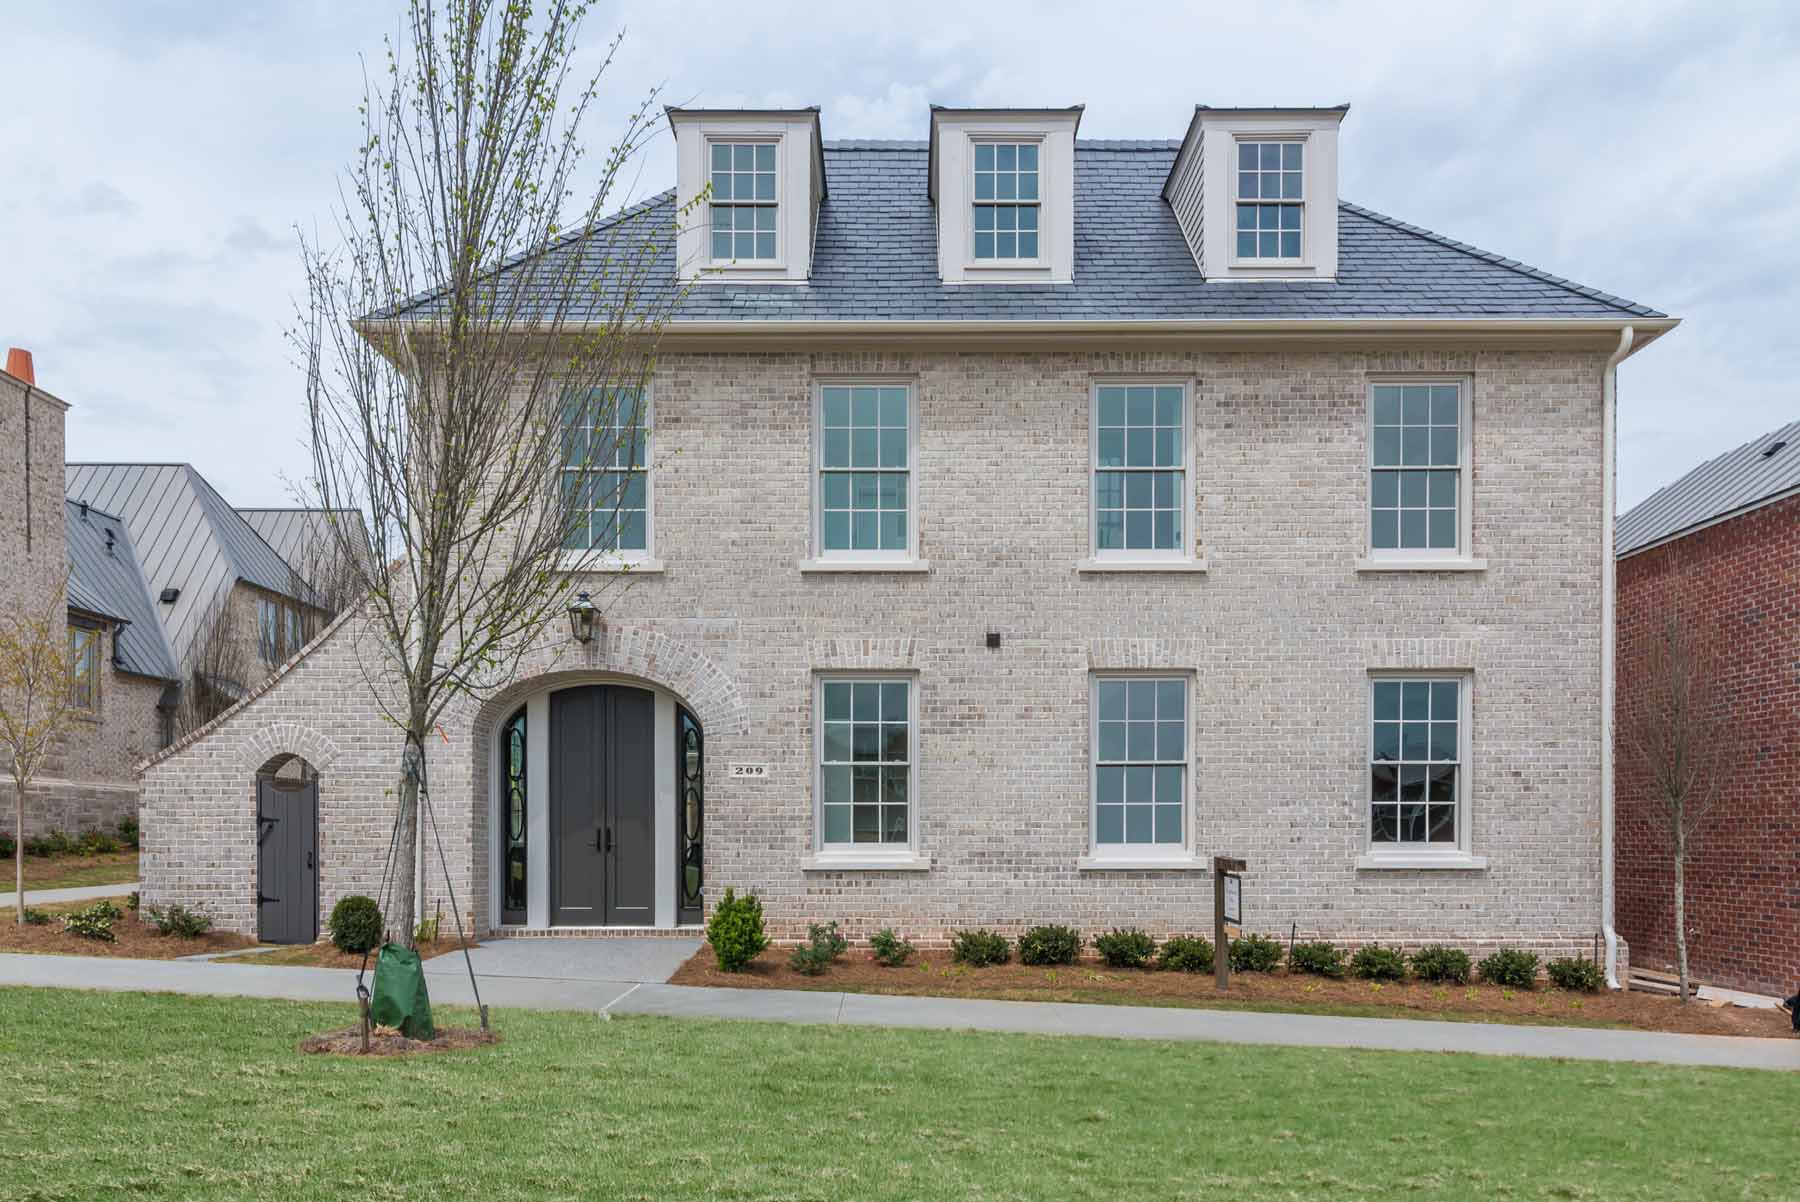 Vivienda unifamiliar por un Venta en Elegant Courtyard Villa Collection at Avalon 336 S Esplanade Alpharetta, Georgia, 30009 Estados Unidos